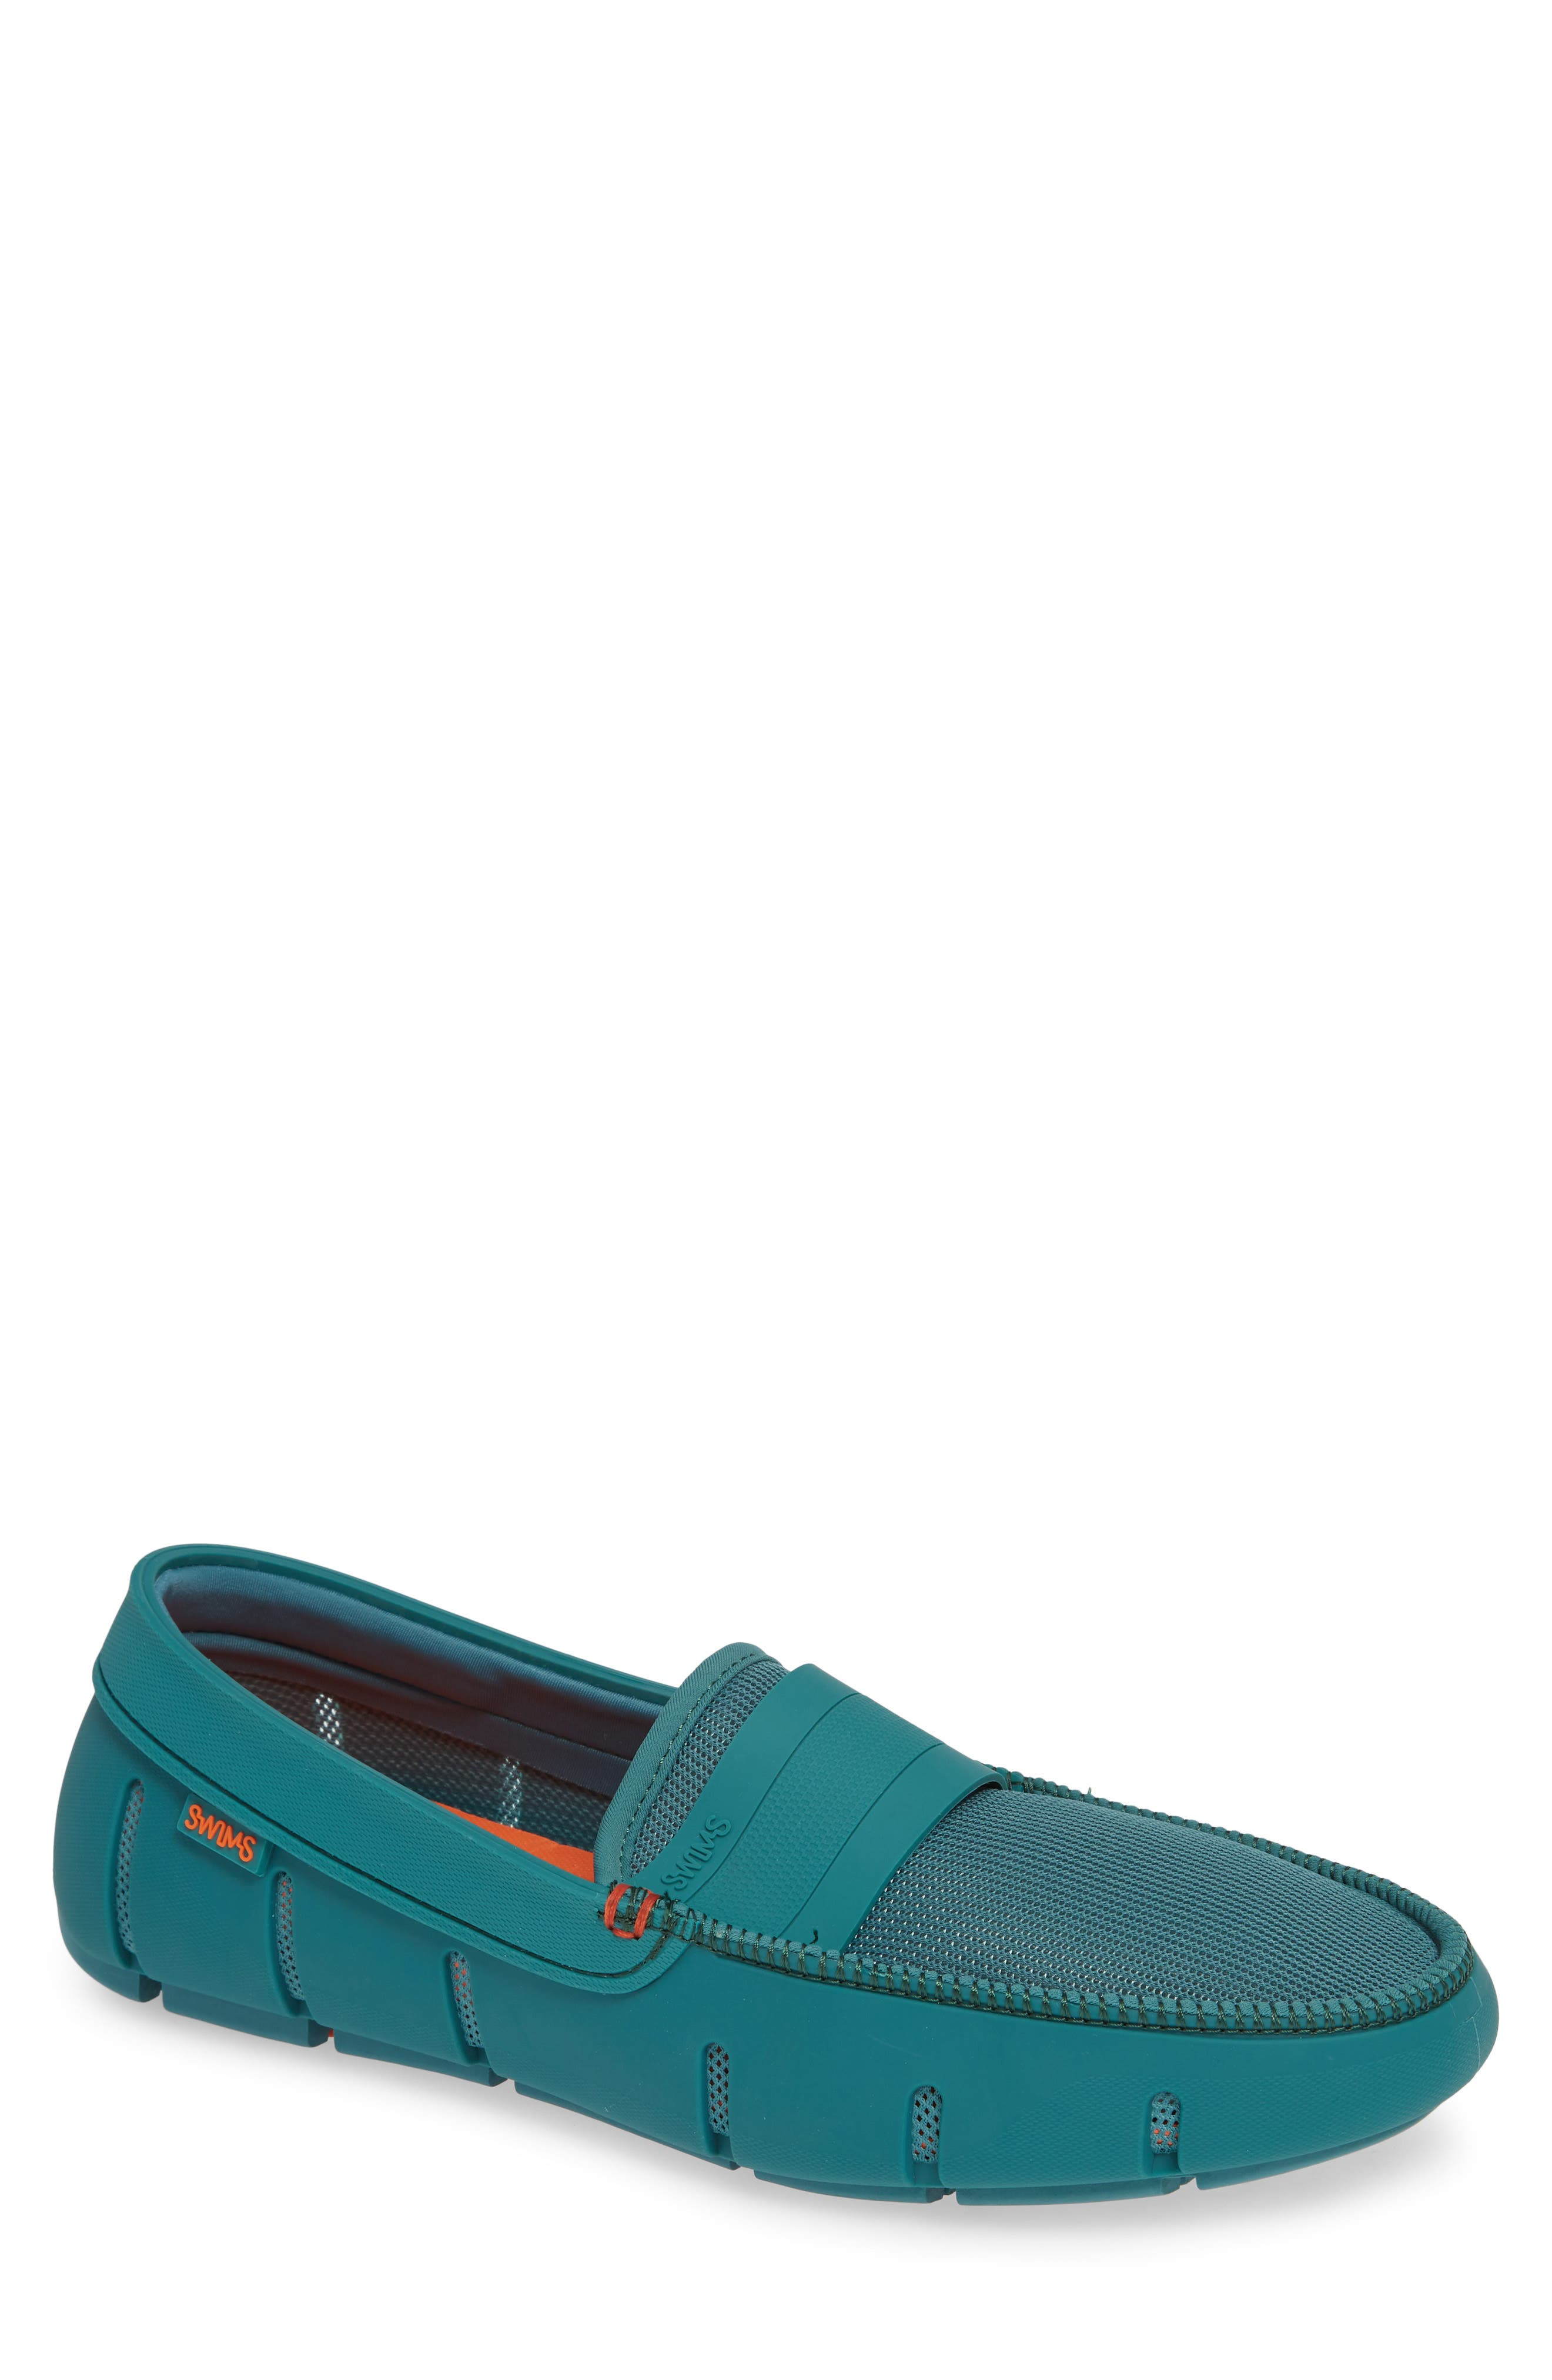 Stride Driving Loafer,                         Main,                         color, TEAL GREEN